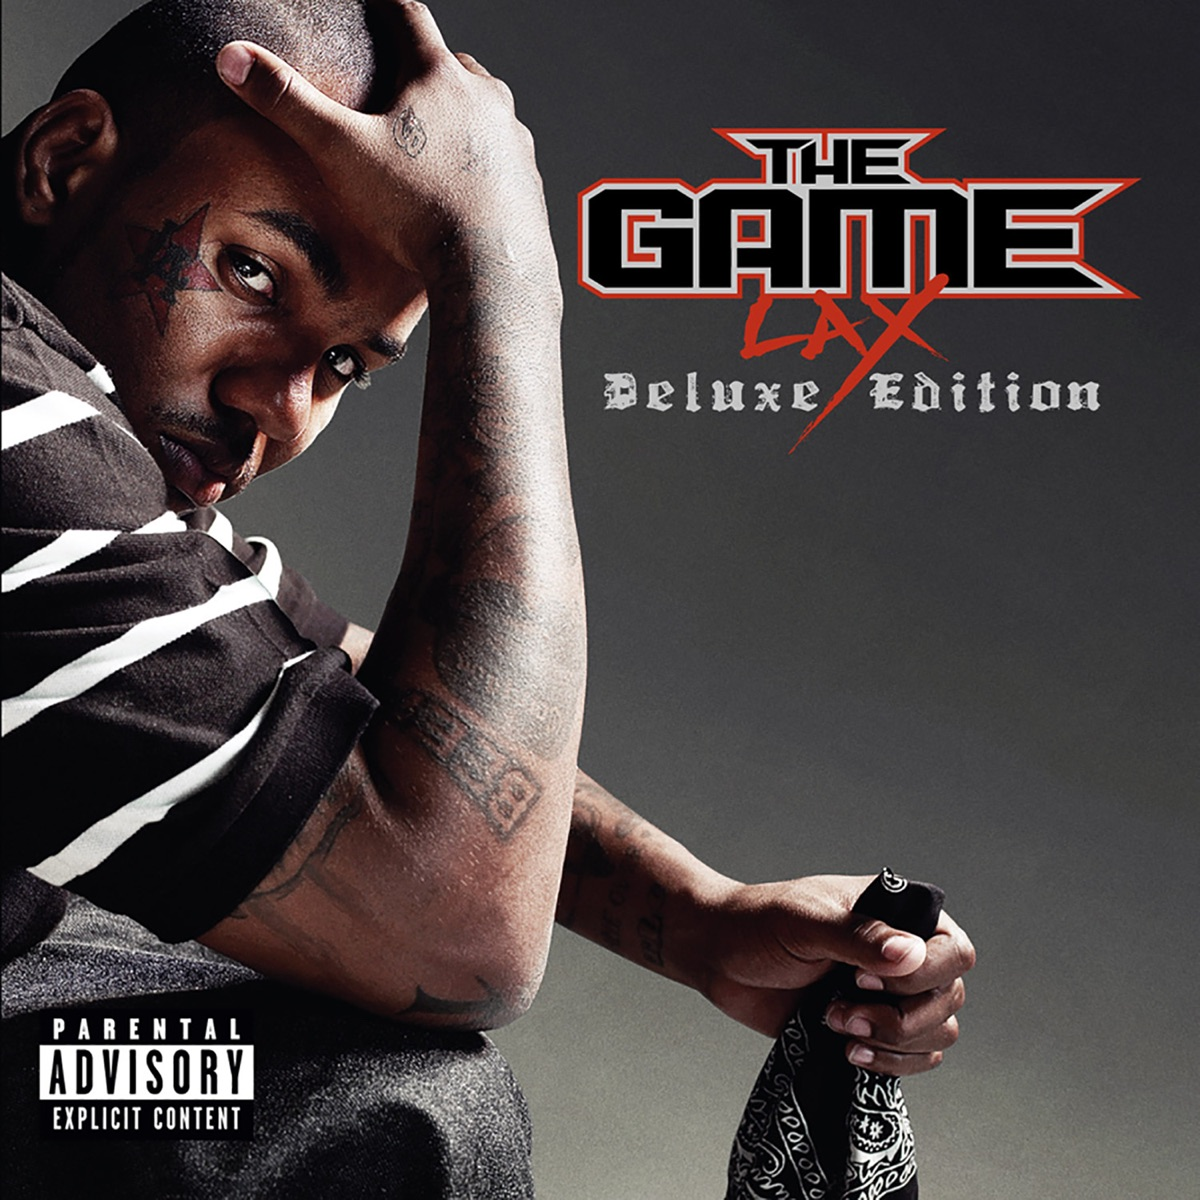 Album Title: LAX by: The Game